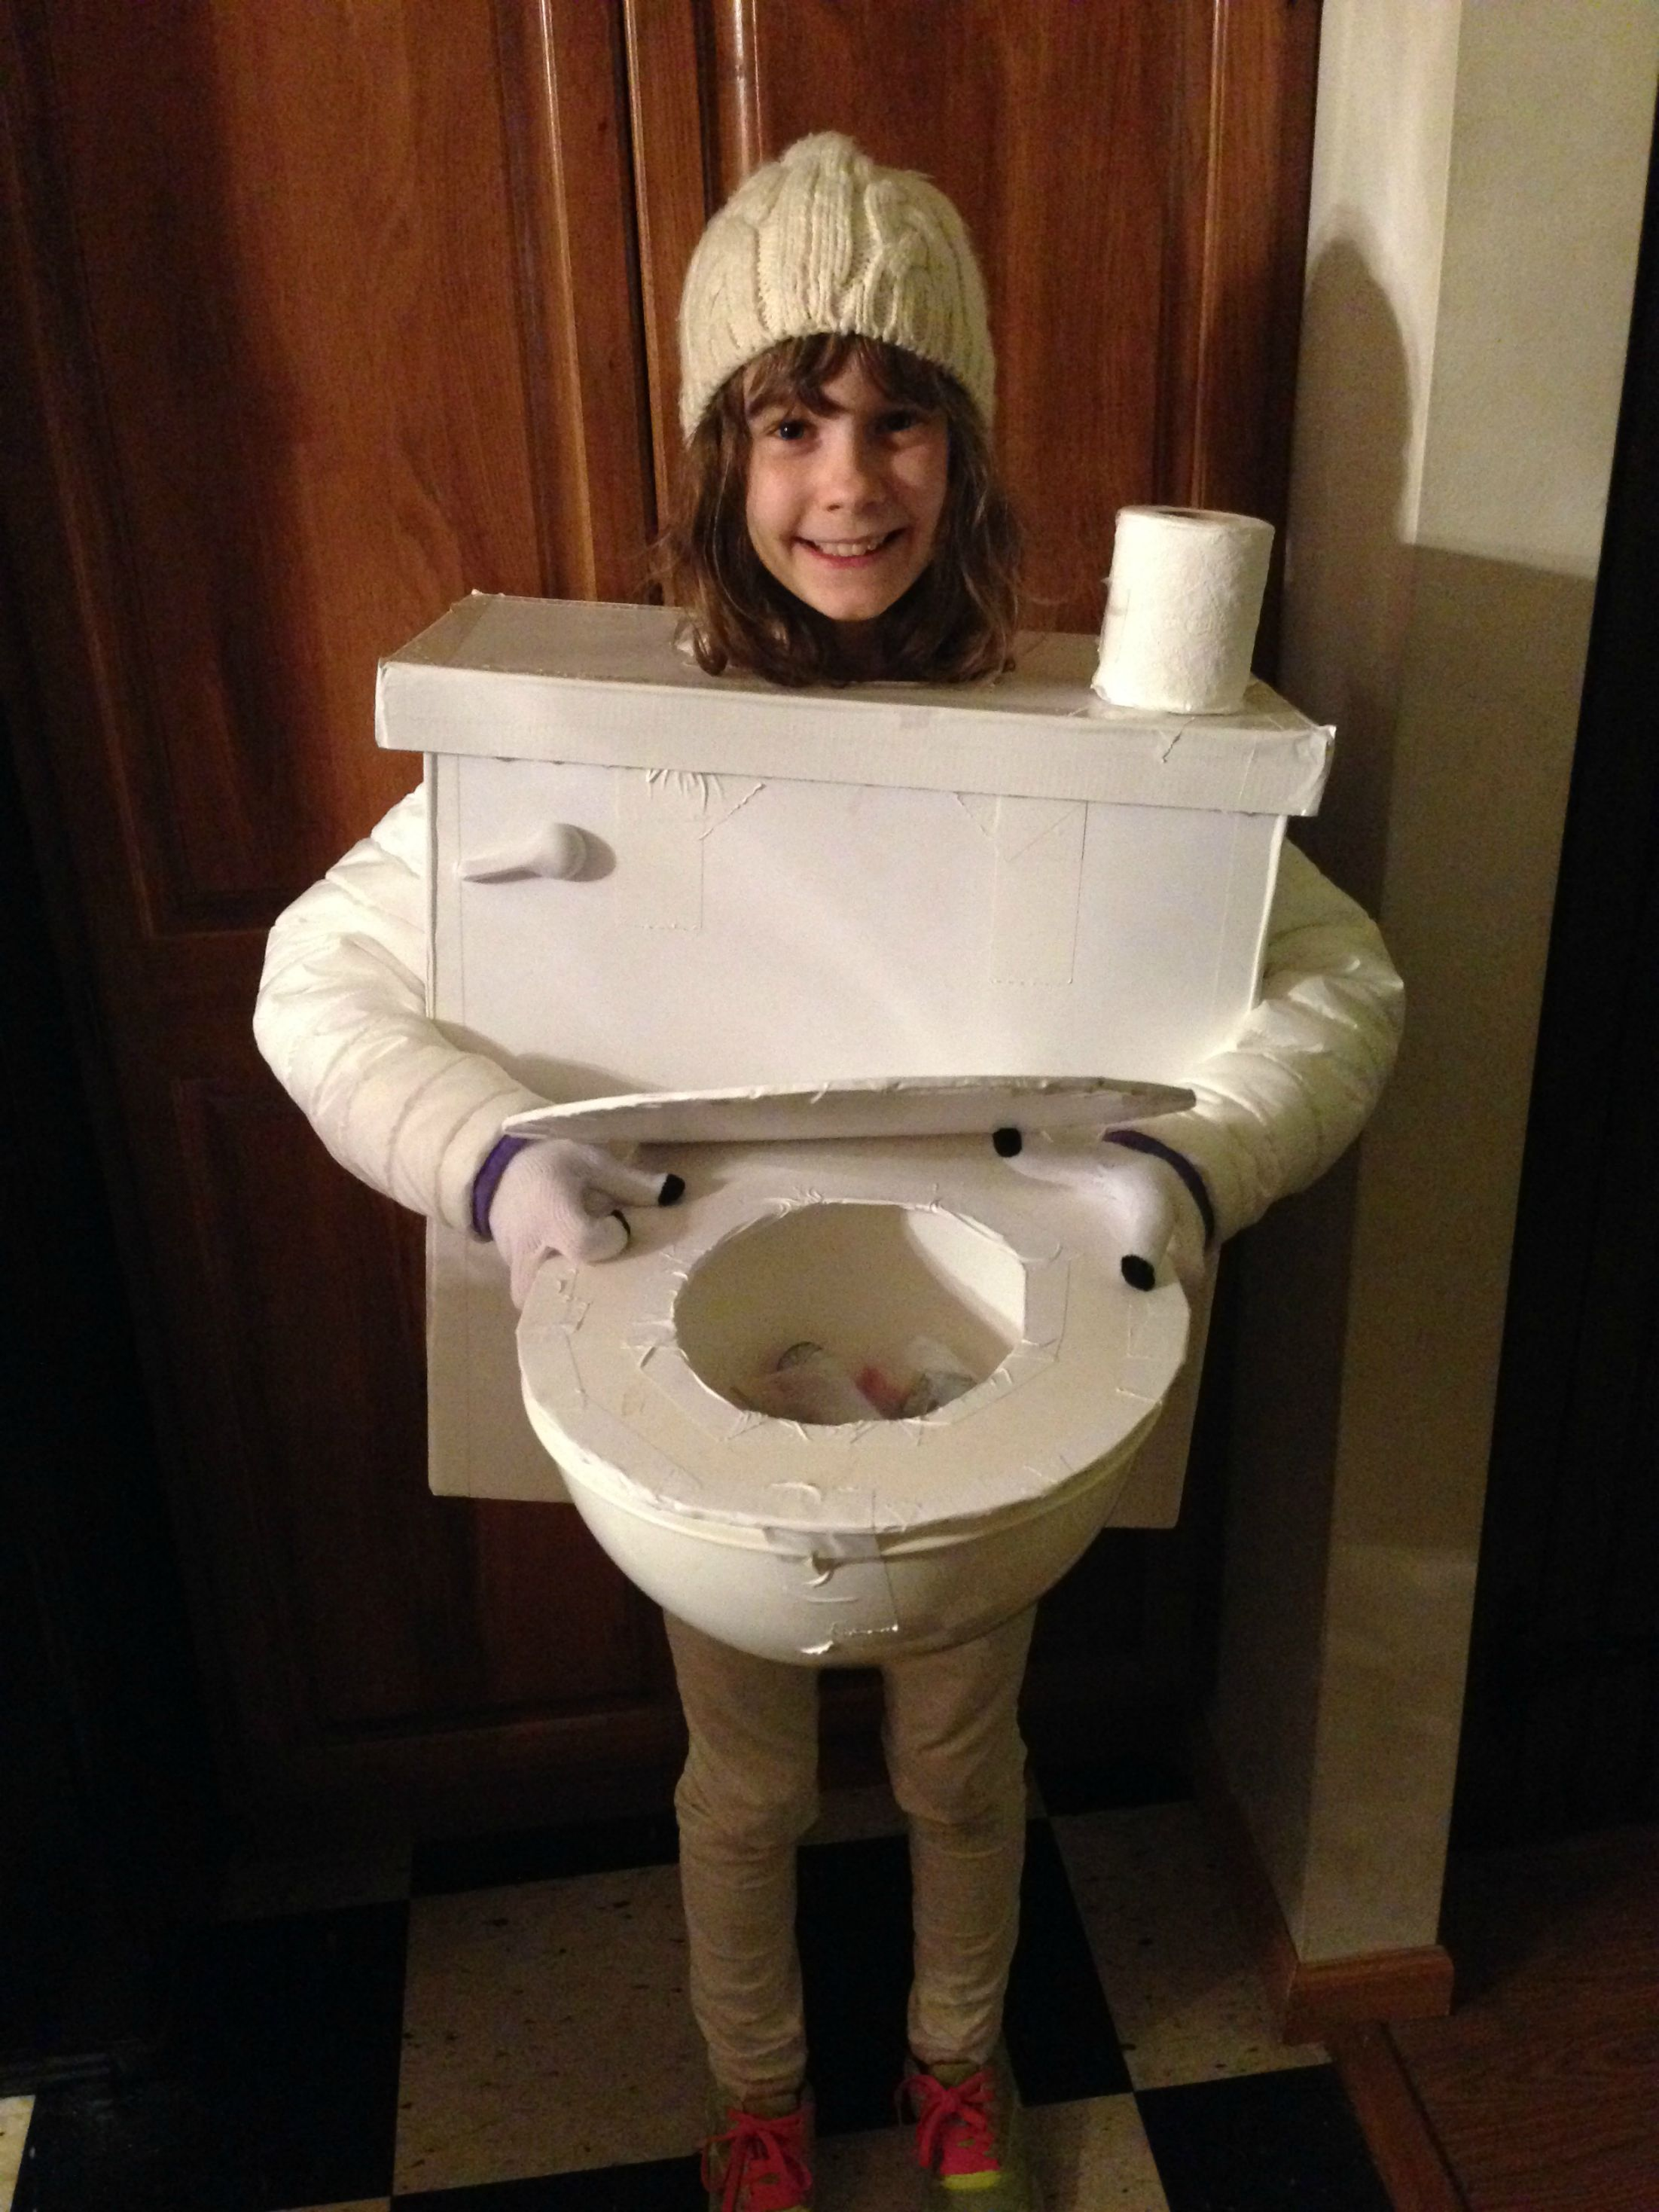 26 diy halloween costumes you can create with cardboard cardboard buying halloween costumes is overrated make one of these cardboard costumes instead solutioingenieria Choice Image